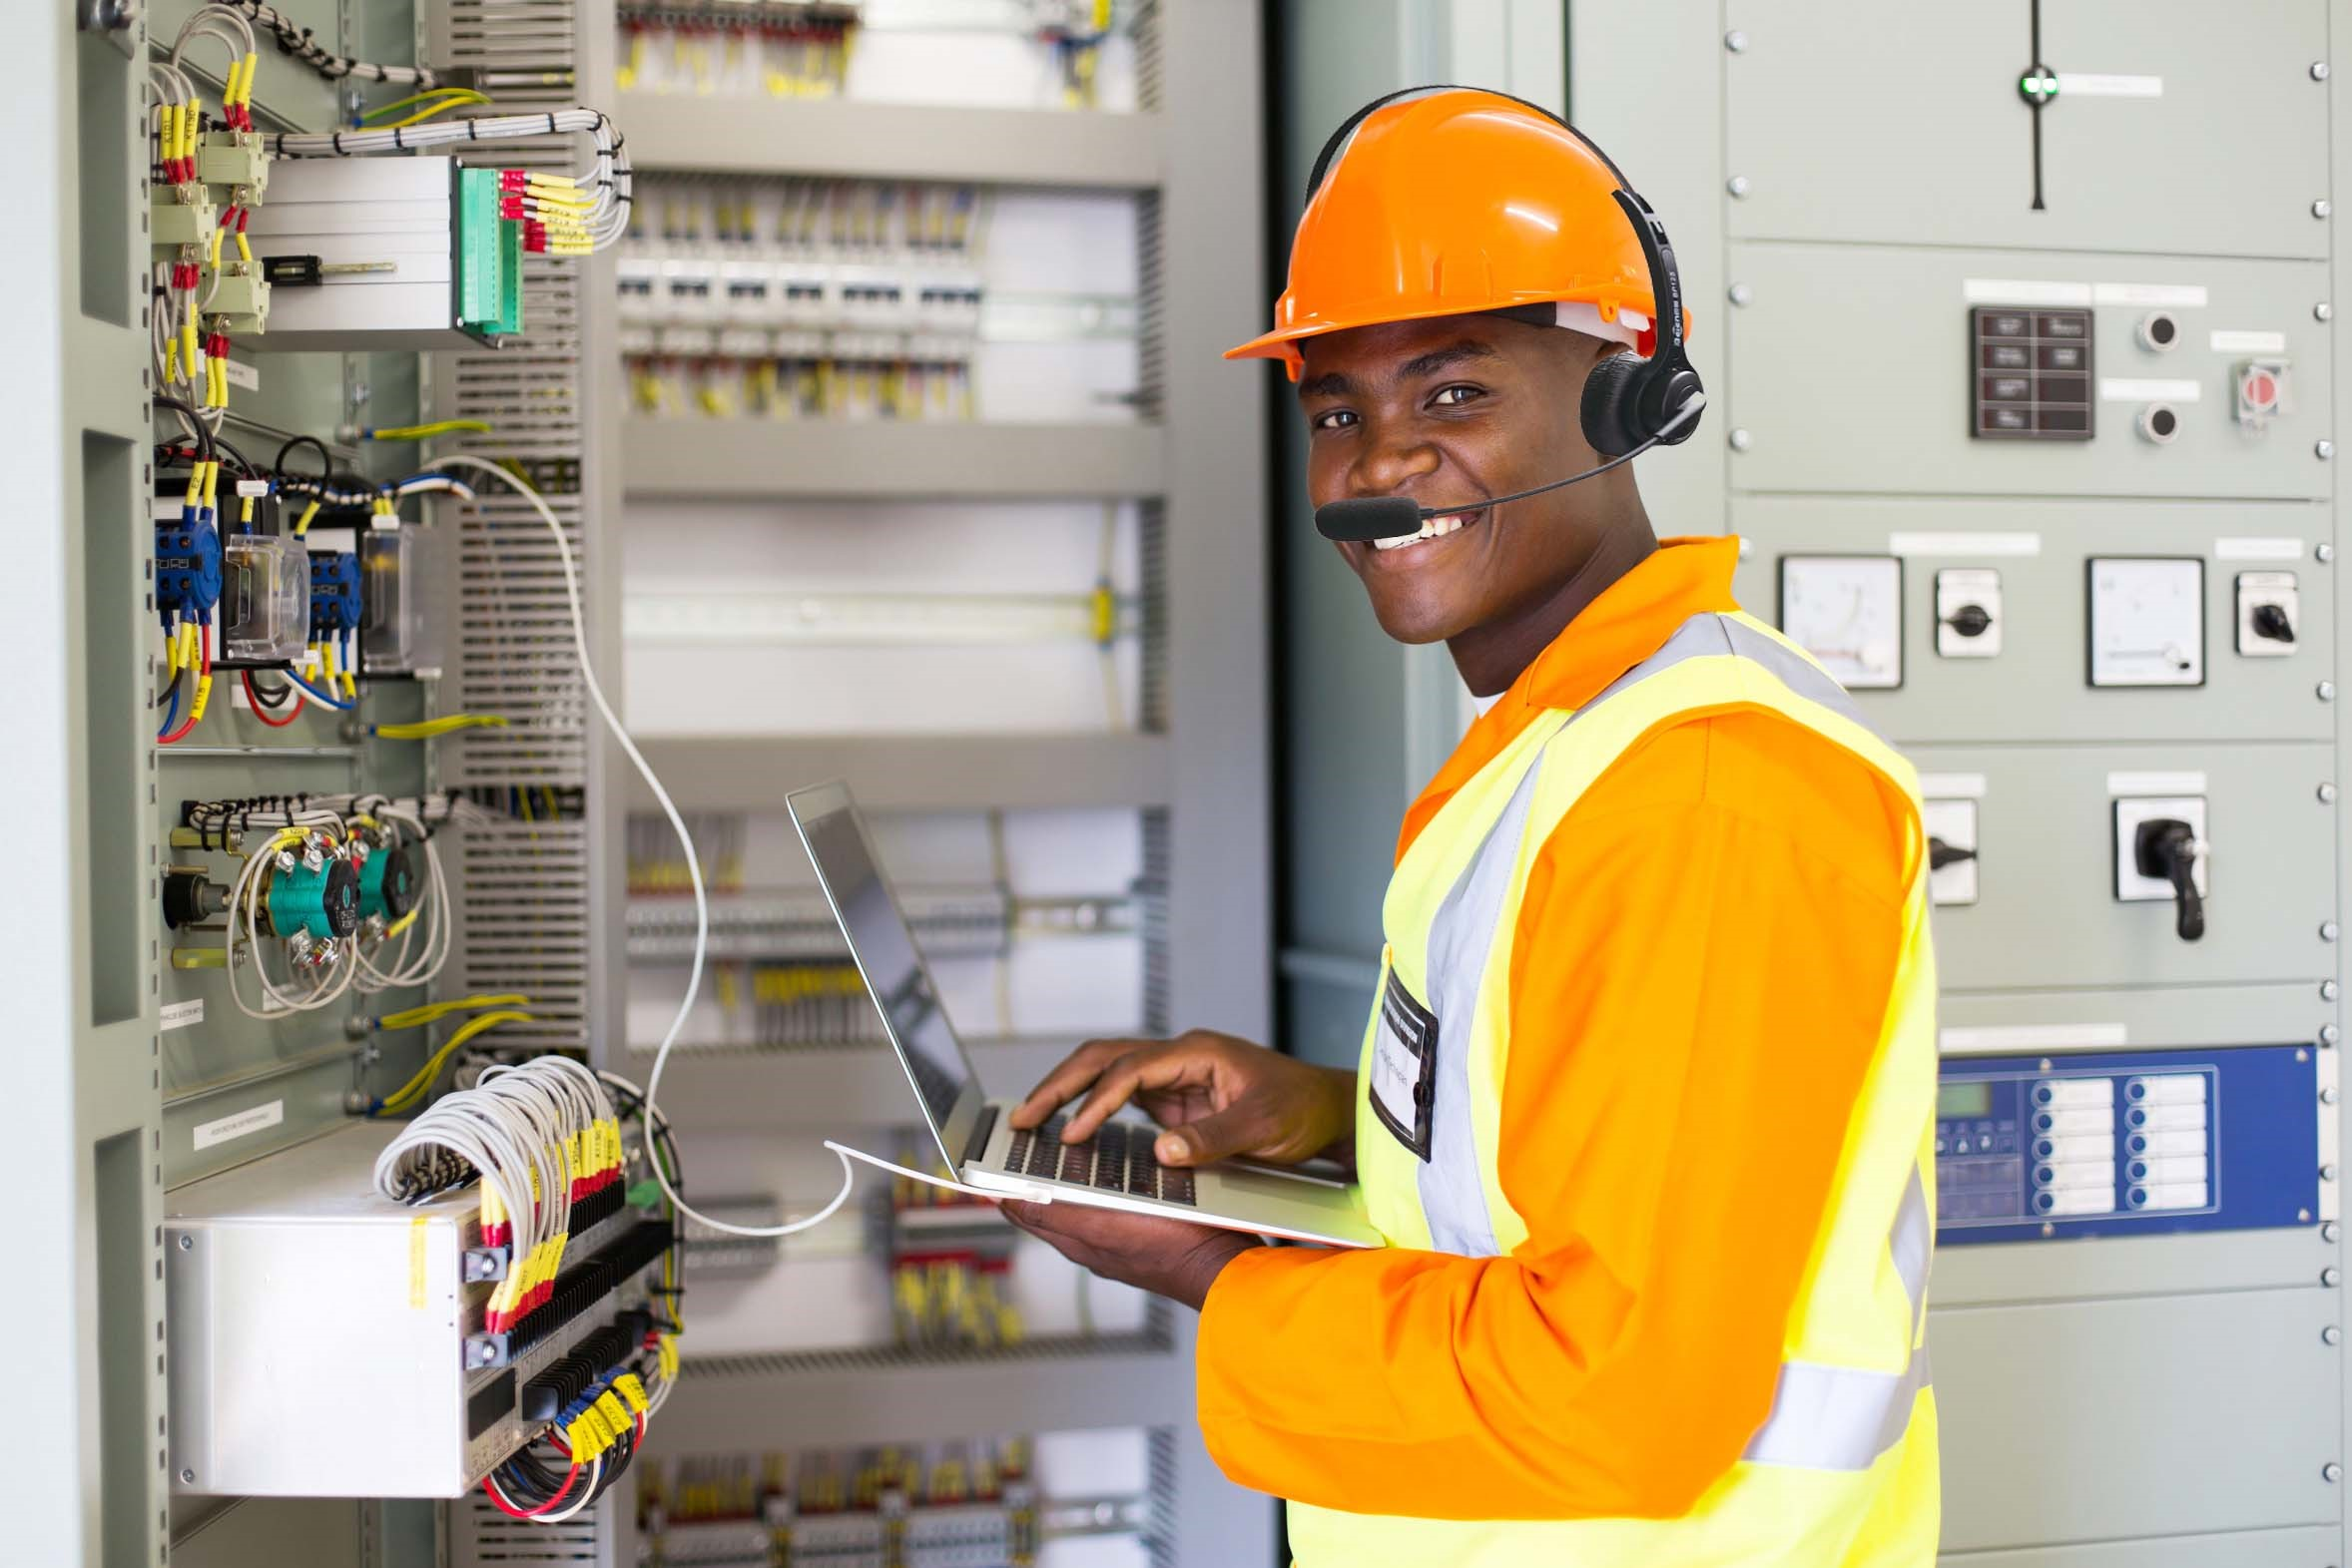 Maintenance technician who works with VOGOF